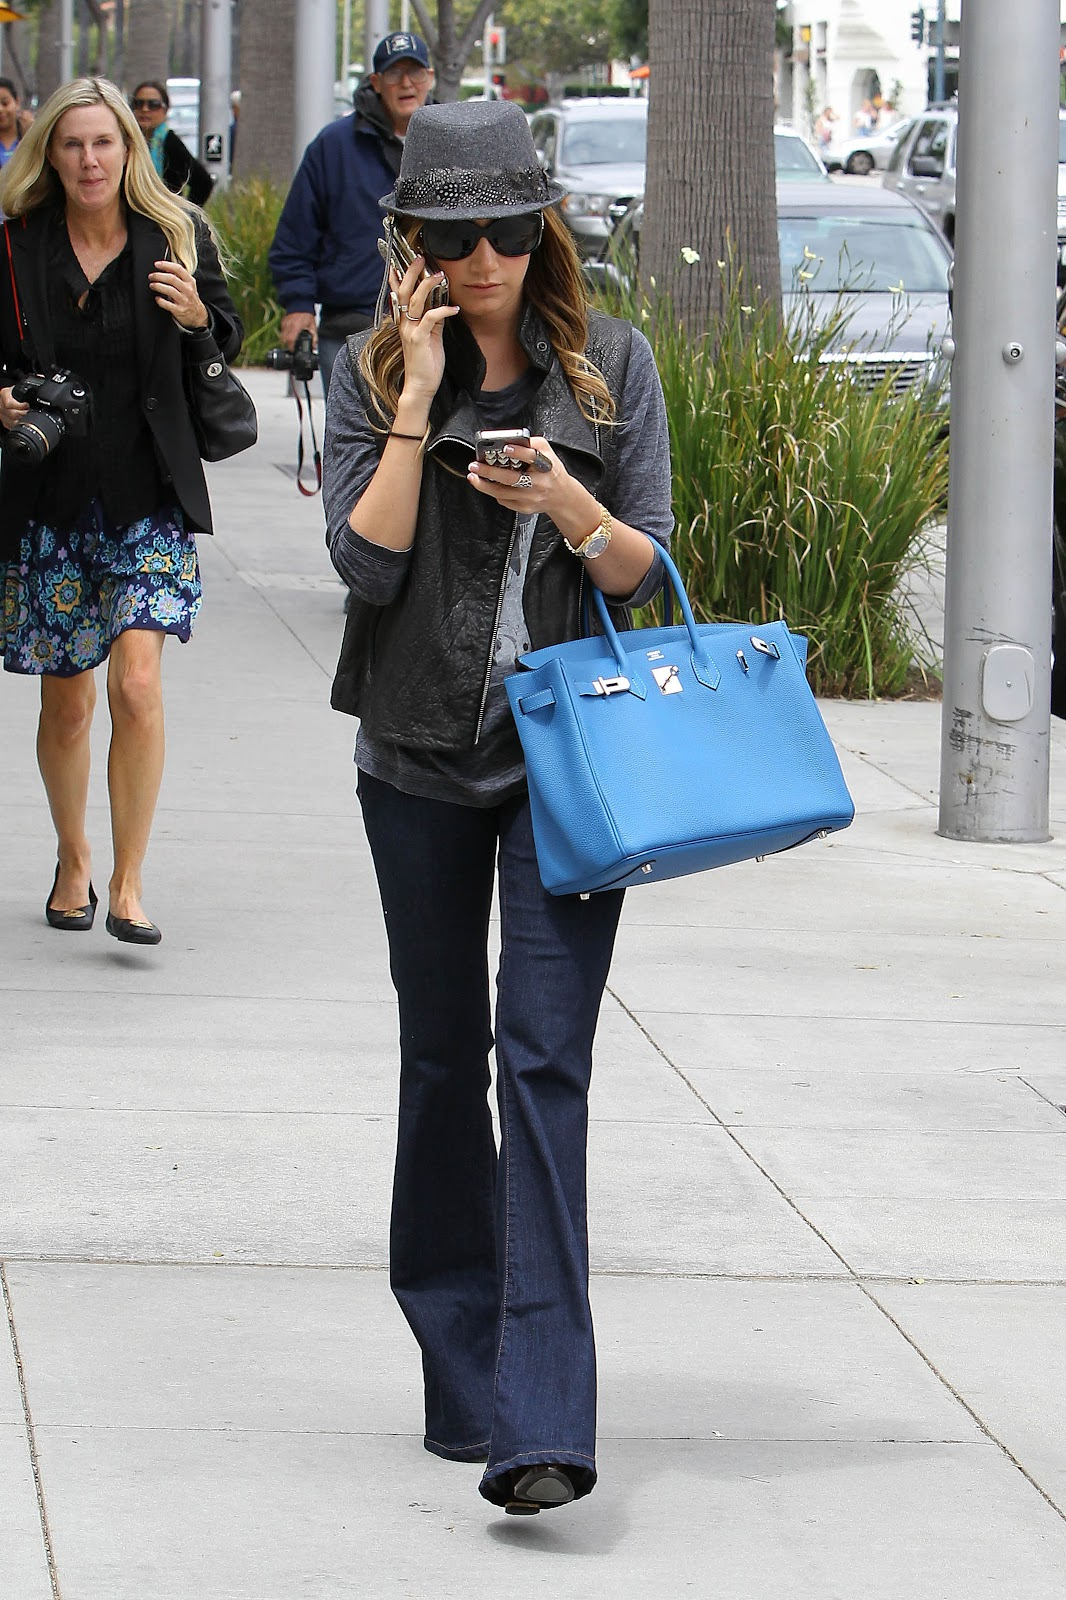 http://1.bp.blogspot.com/-gEiFbQHVnsA/T1EZWc2MsNI/AAAAAAAAAh0/UBeXG8Hcwzw/s1600/ashley-tisdale-fashion-celebrity-gossip.jpg